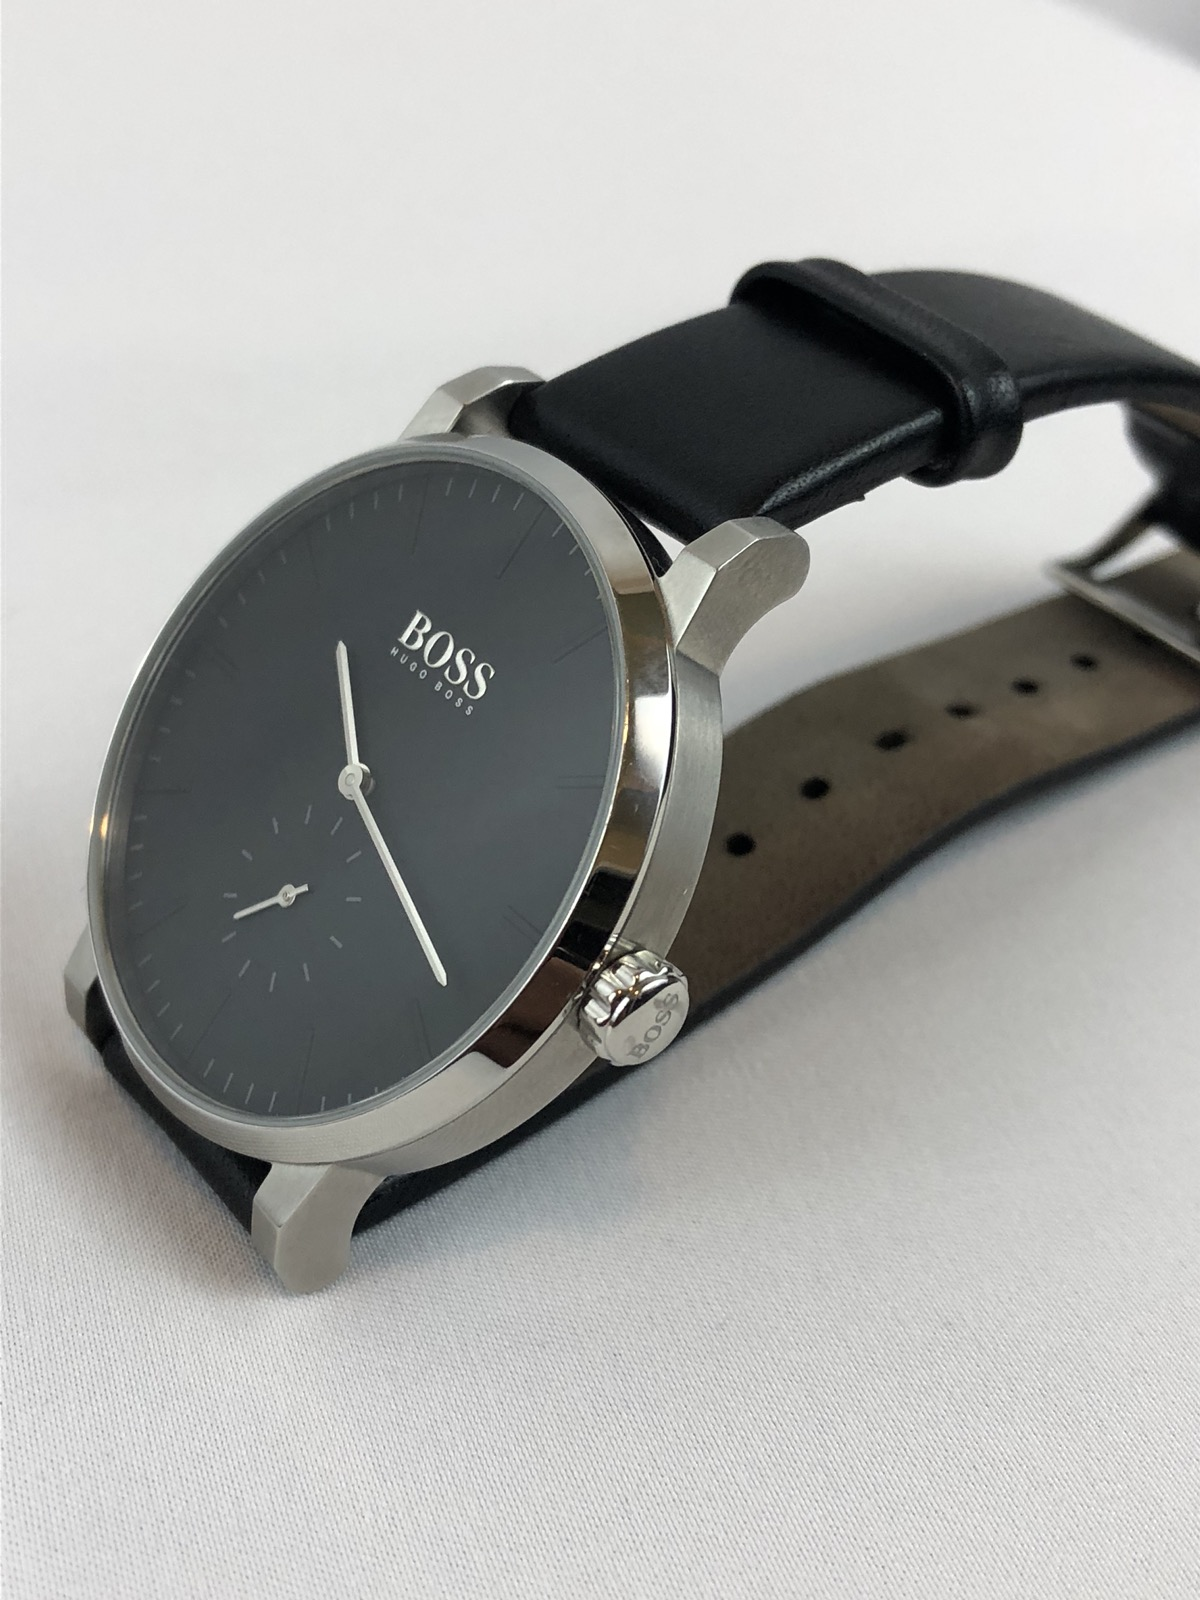 1af9c3d2e71 Hugo Boss Hugo Boss Men s Essence Modern Watch Silver Tone Black Dial  Leather Size one size - Jewelry   Watches for Sale - Grailed